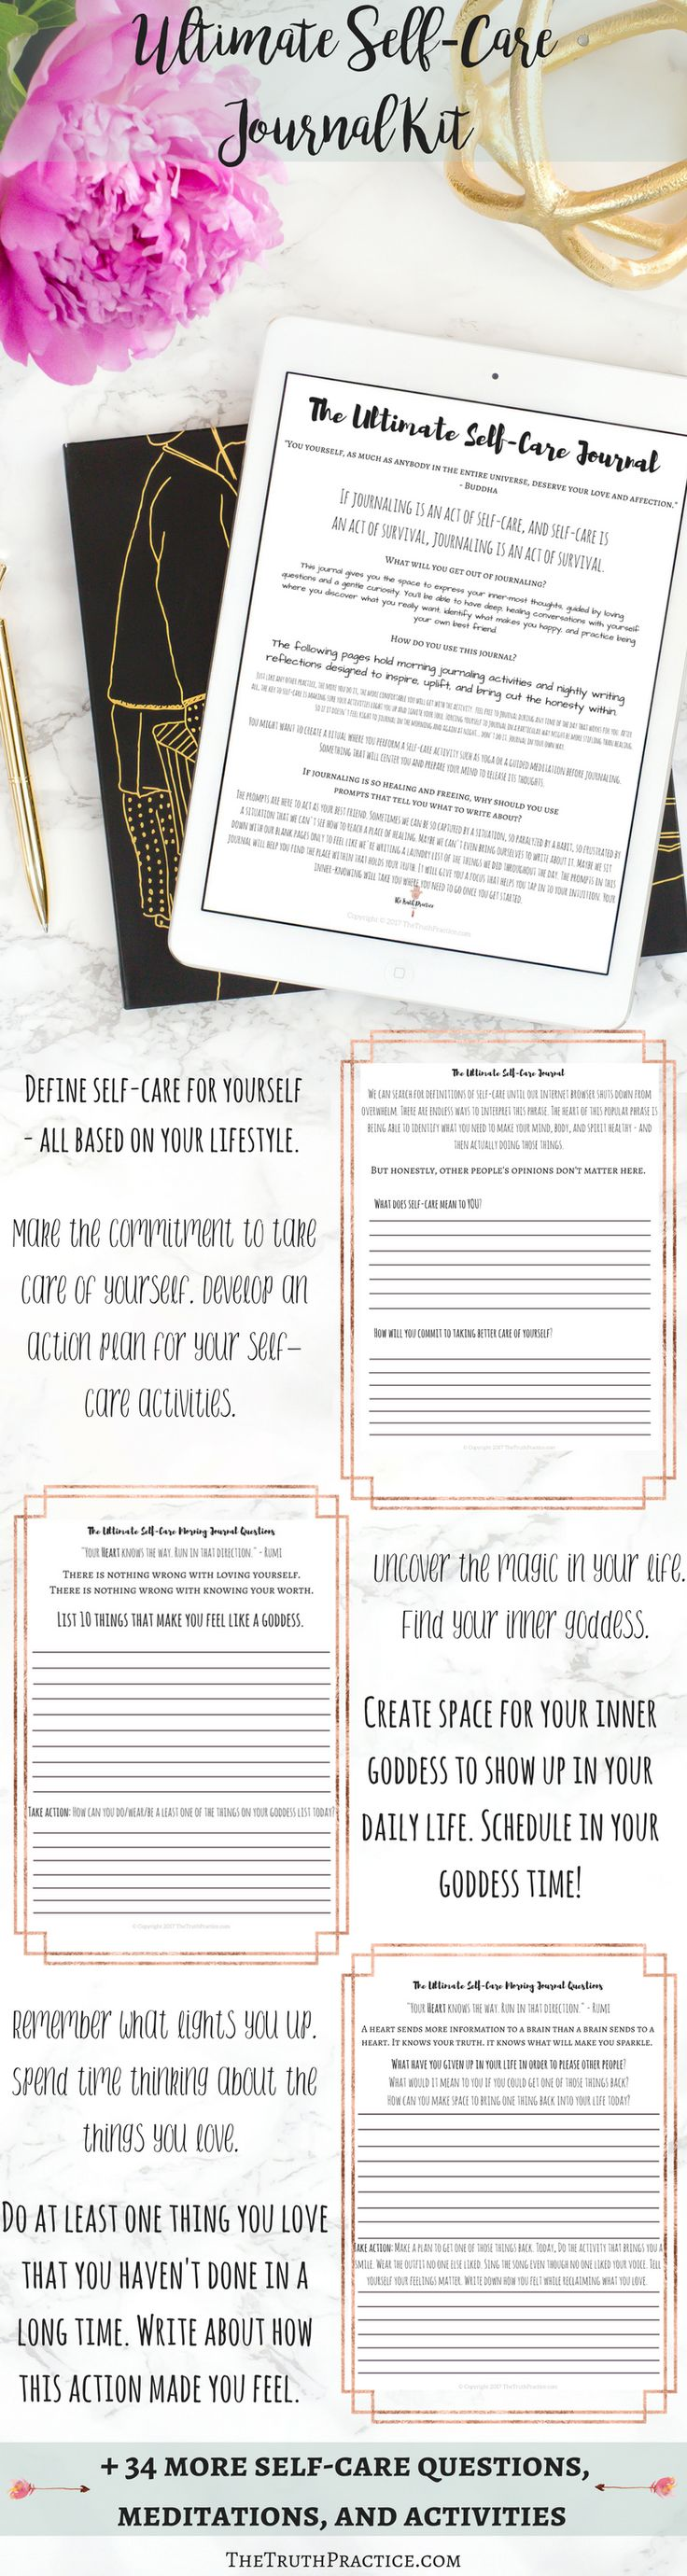 worksheet Self Care Worksheets best 25 self care worksheets ideas on pinterest you dont have to brainstorm activities with this printable journal each worksheet is filled journ